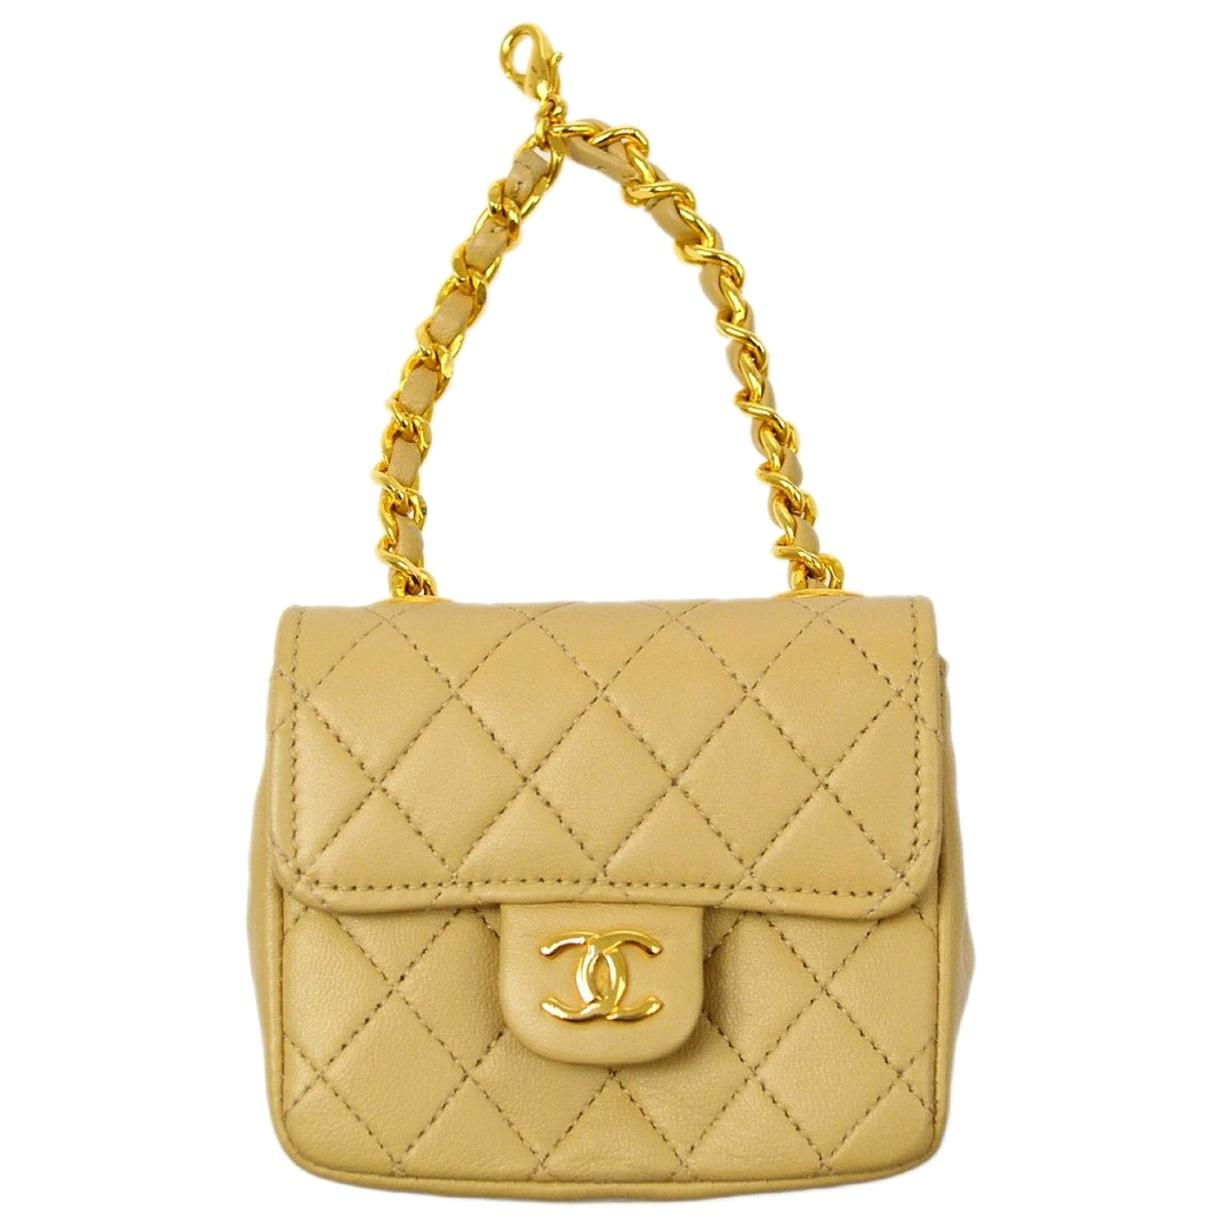 Chanel Nude Beige Leather Gold Small Mini Top Handle Pochette Flap Bag in Box